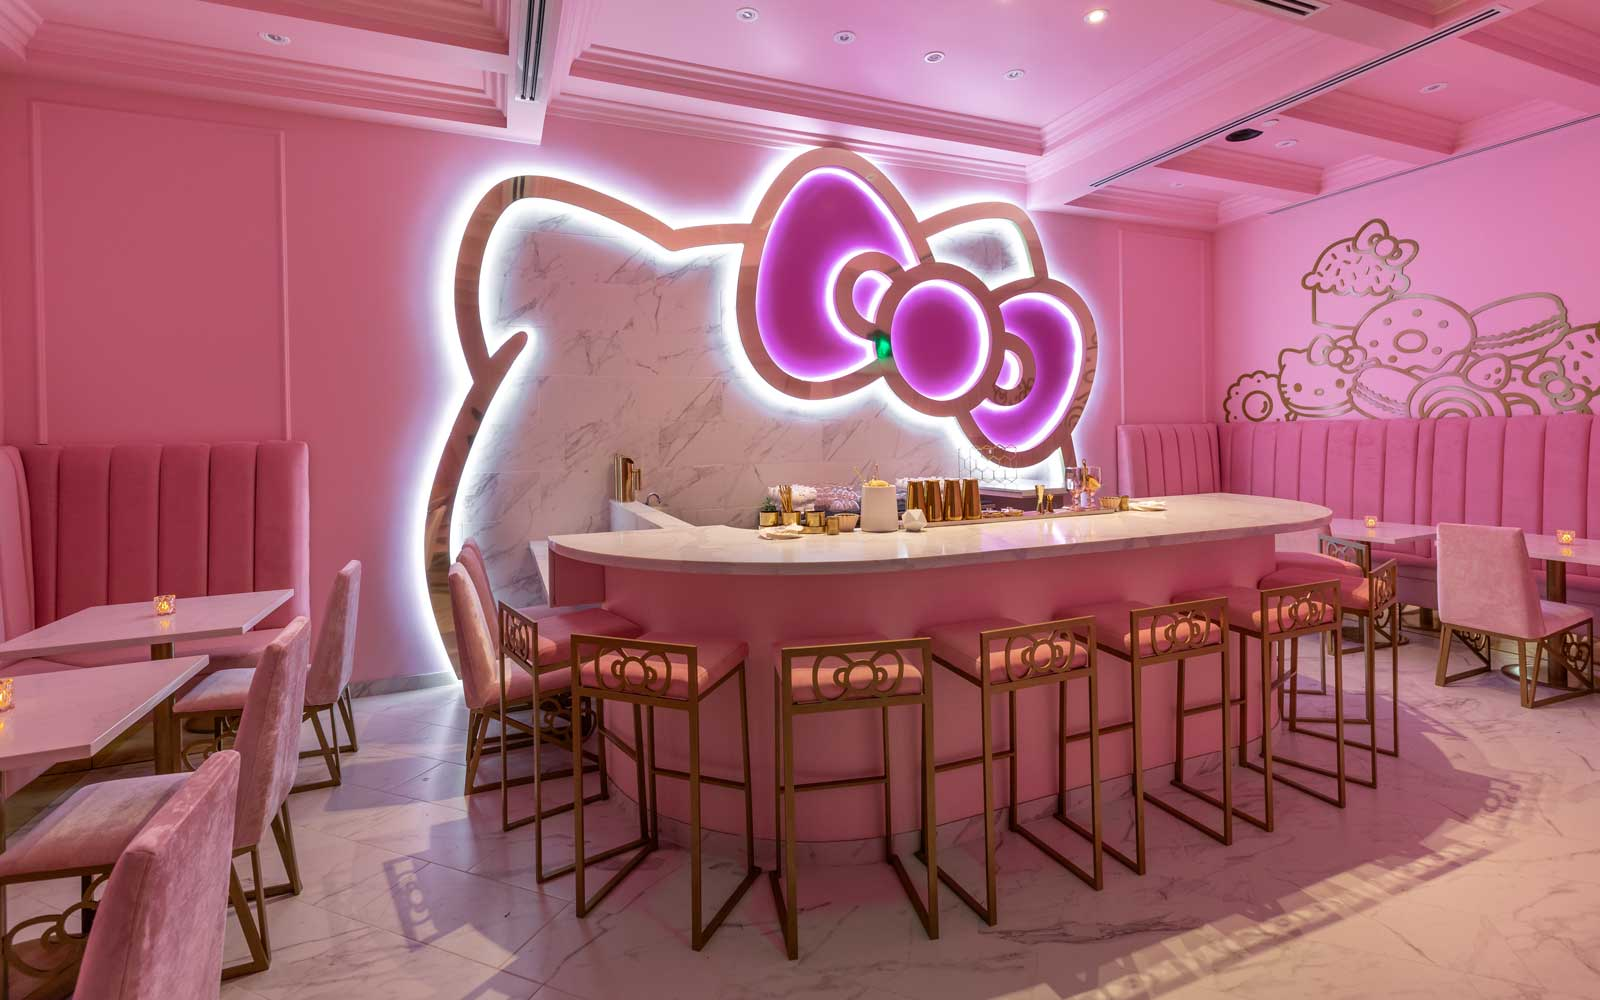 Hello Kitty Cafe in Irvine, California